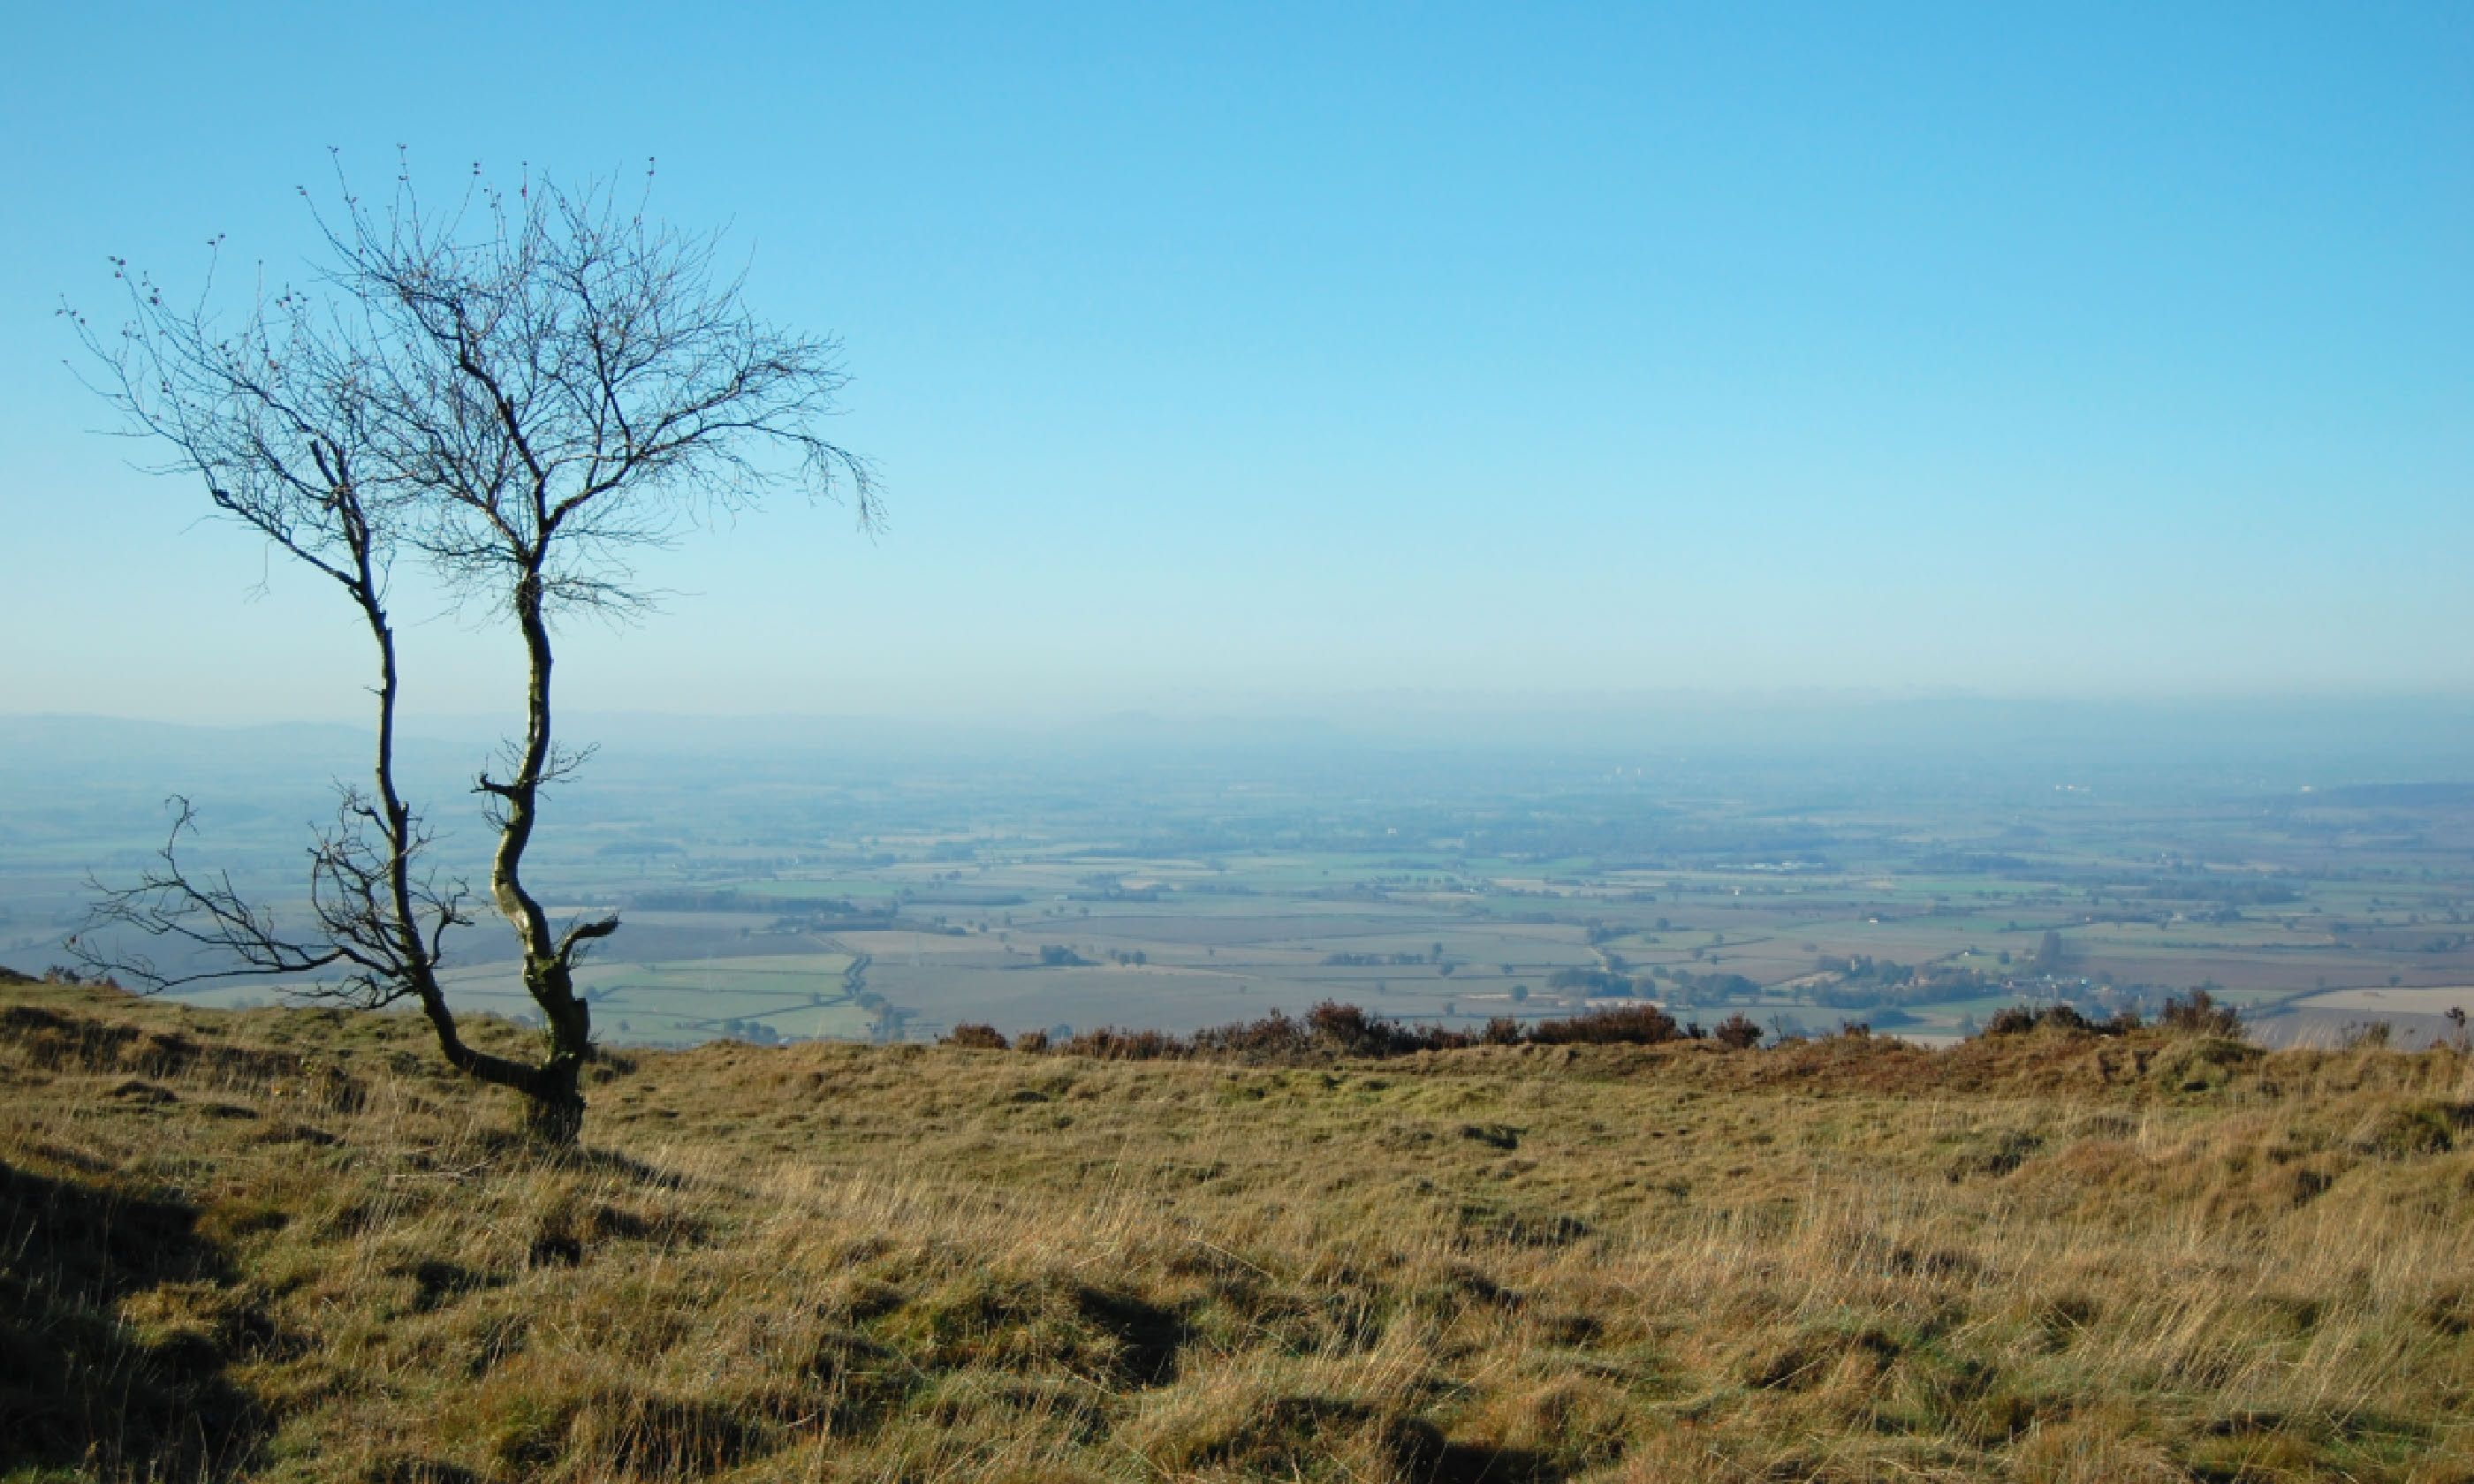 View from the top of the Wrekin – should you choose to climb it... (Shutterstock)